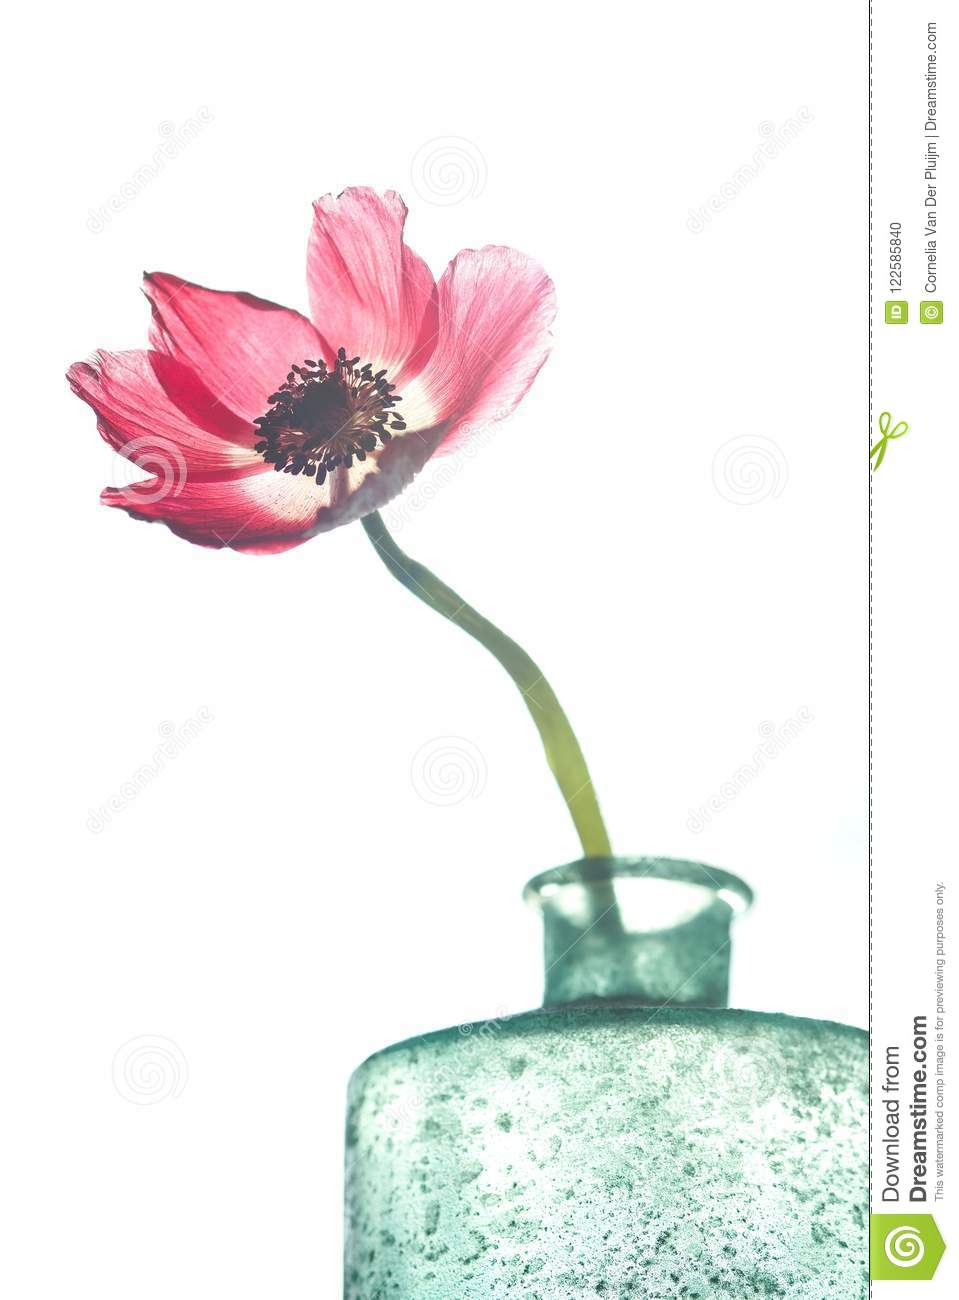 Red Anemone Flower With Long Stalk Stock Photo Image Of Blossom